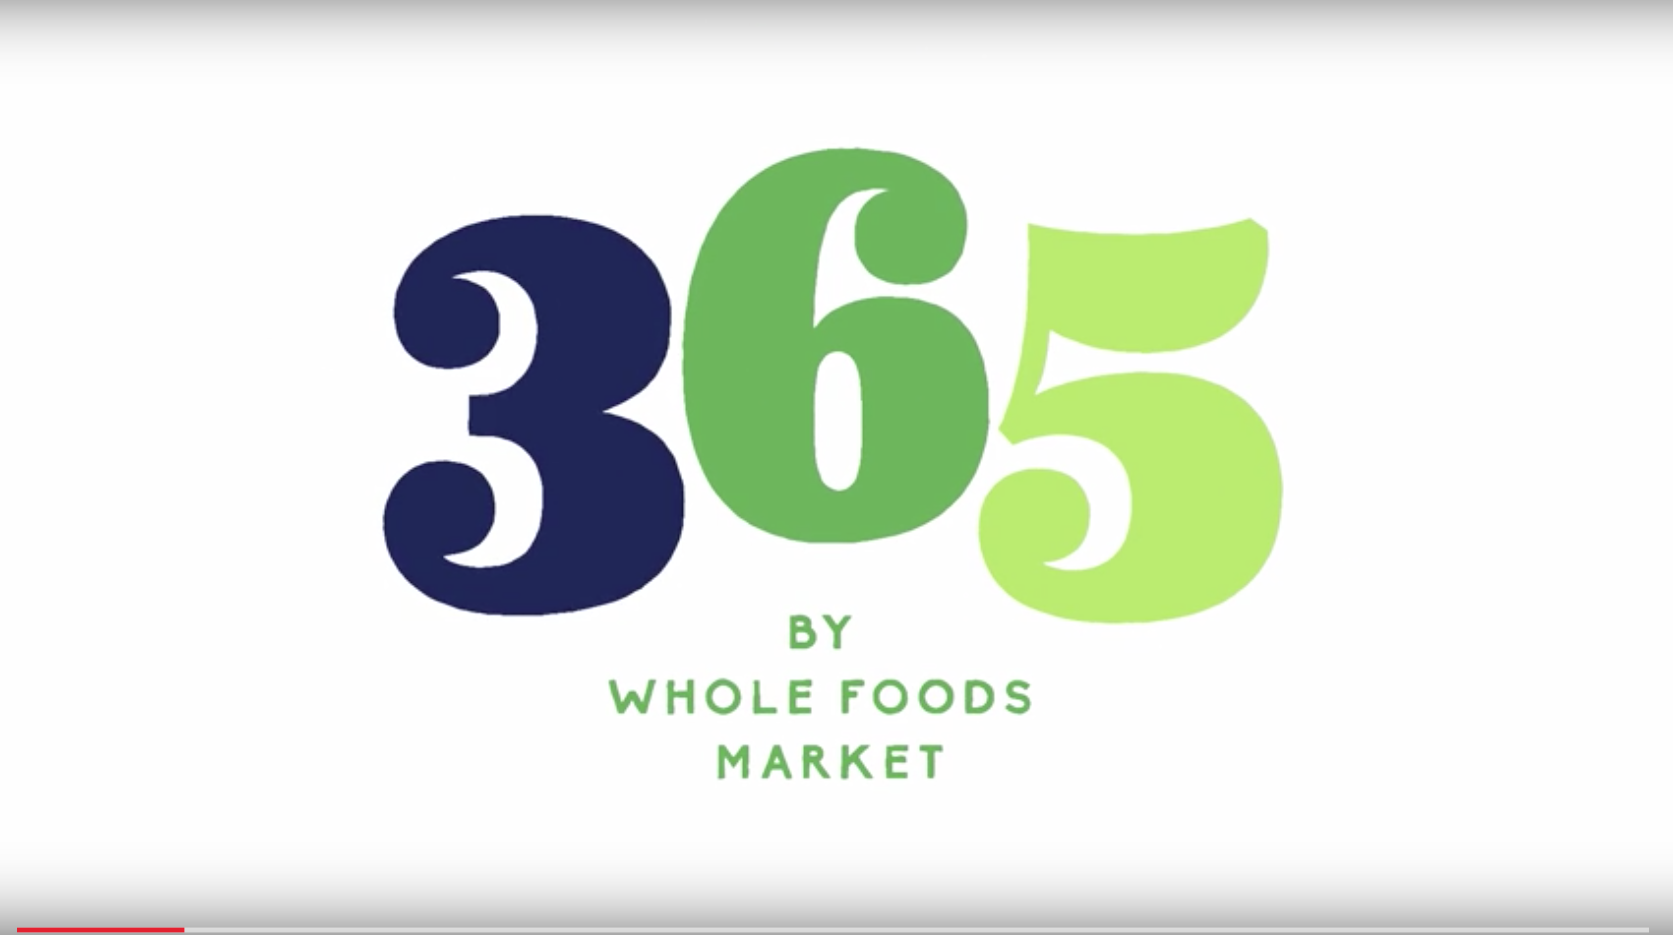 365 whole foods